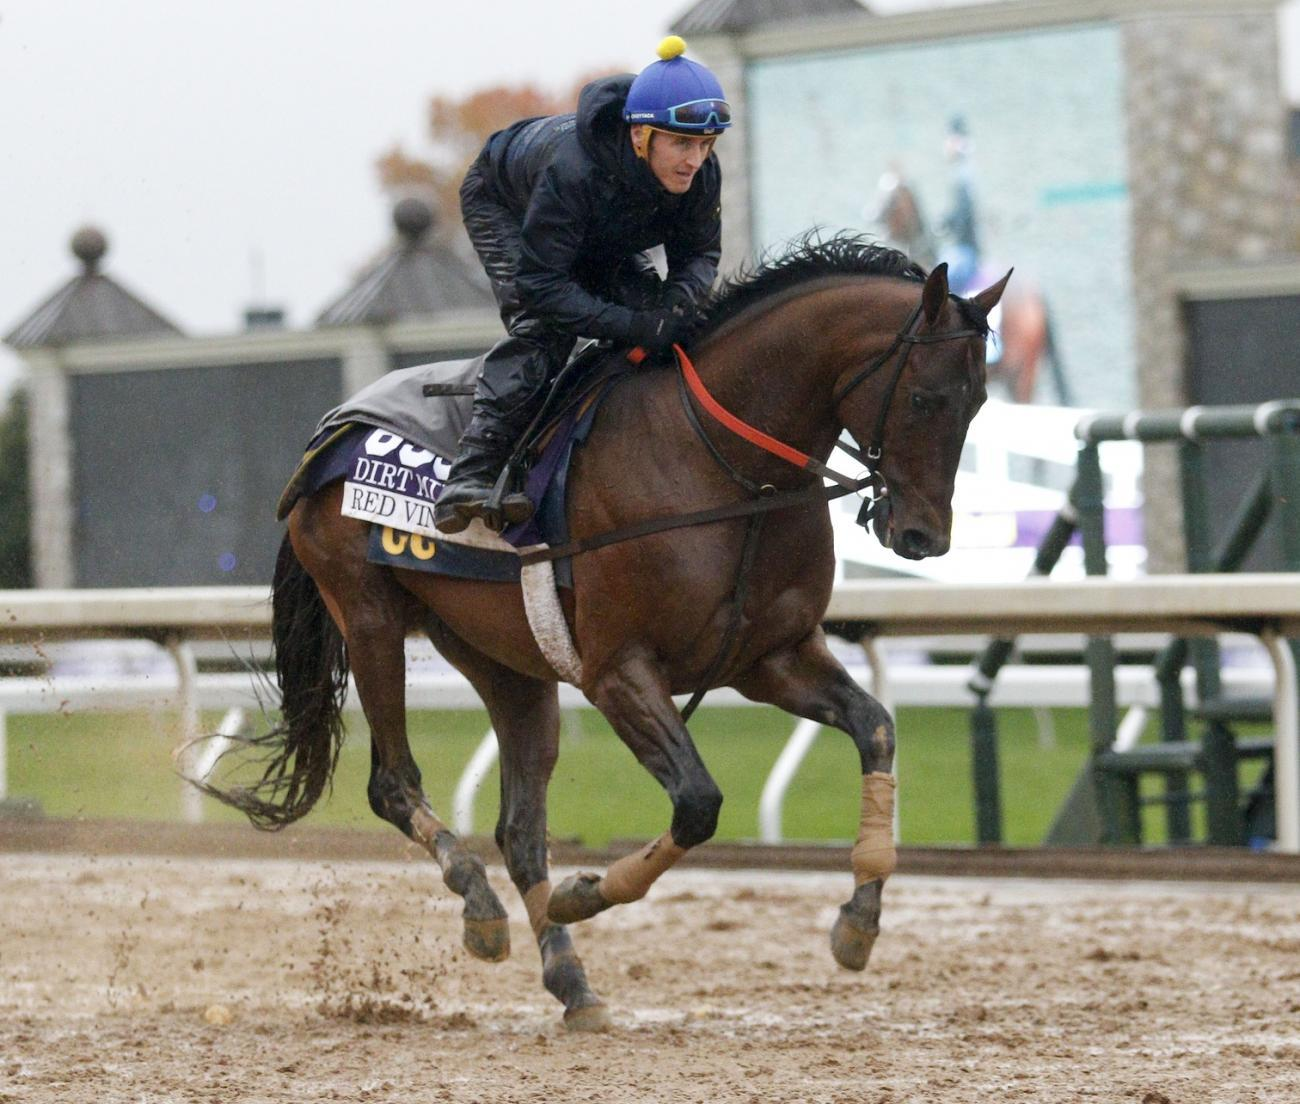 Breeders Cup Filly Amp Mare Turf 2015 Odds Entries